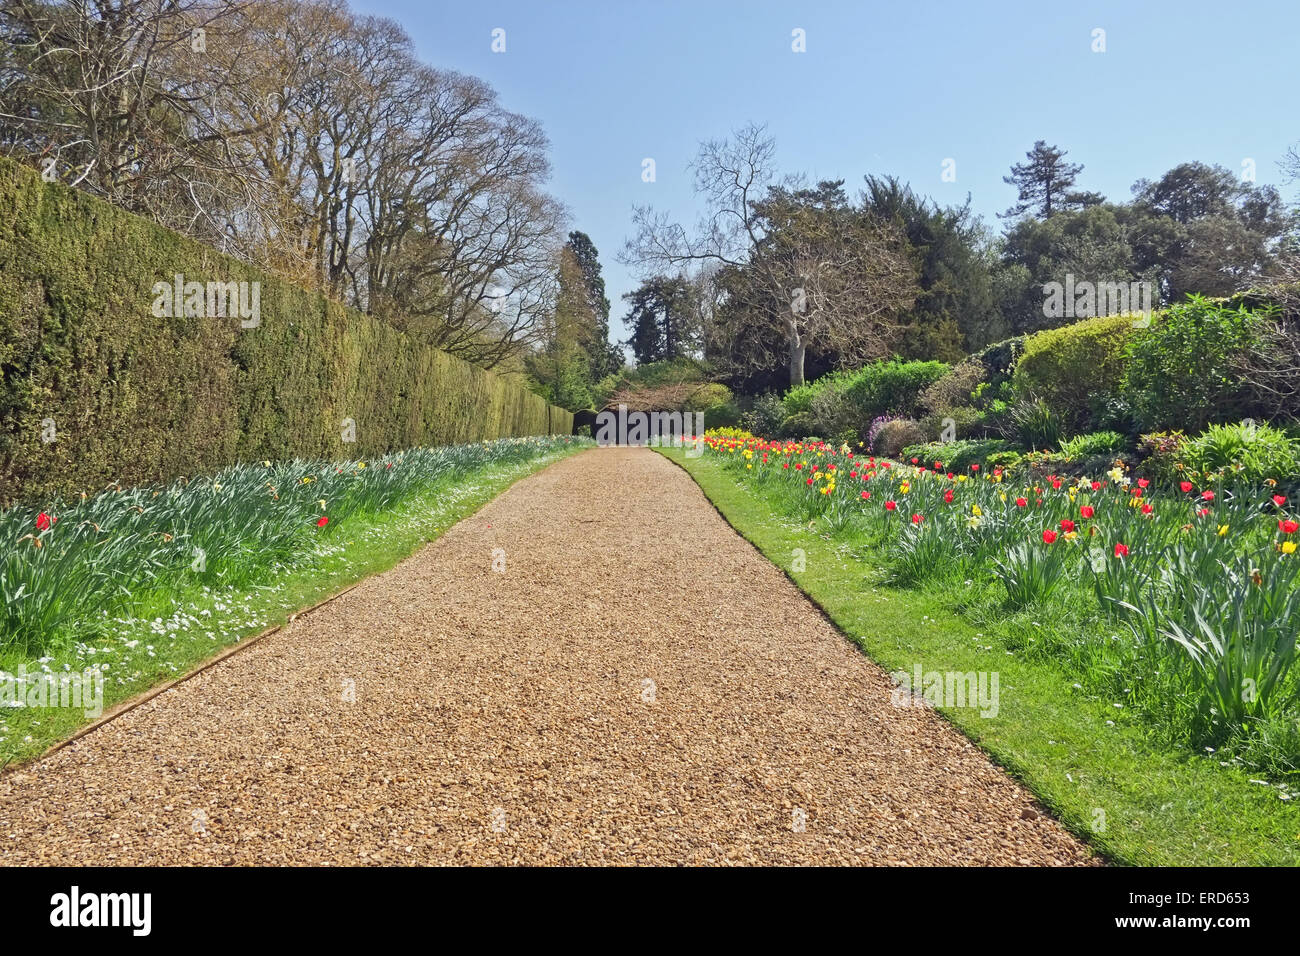 House Plants Low Light Gravel Path In Stately Home Garden United Kingdom Stock